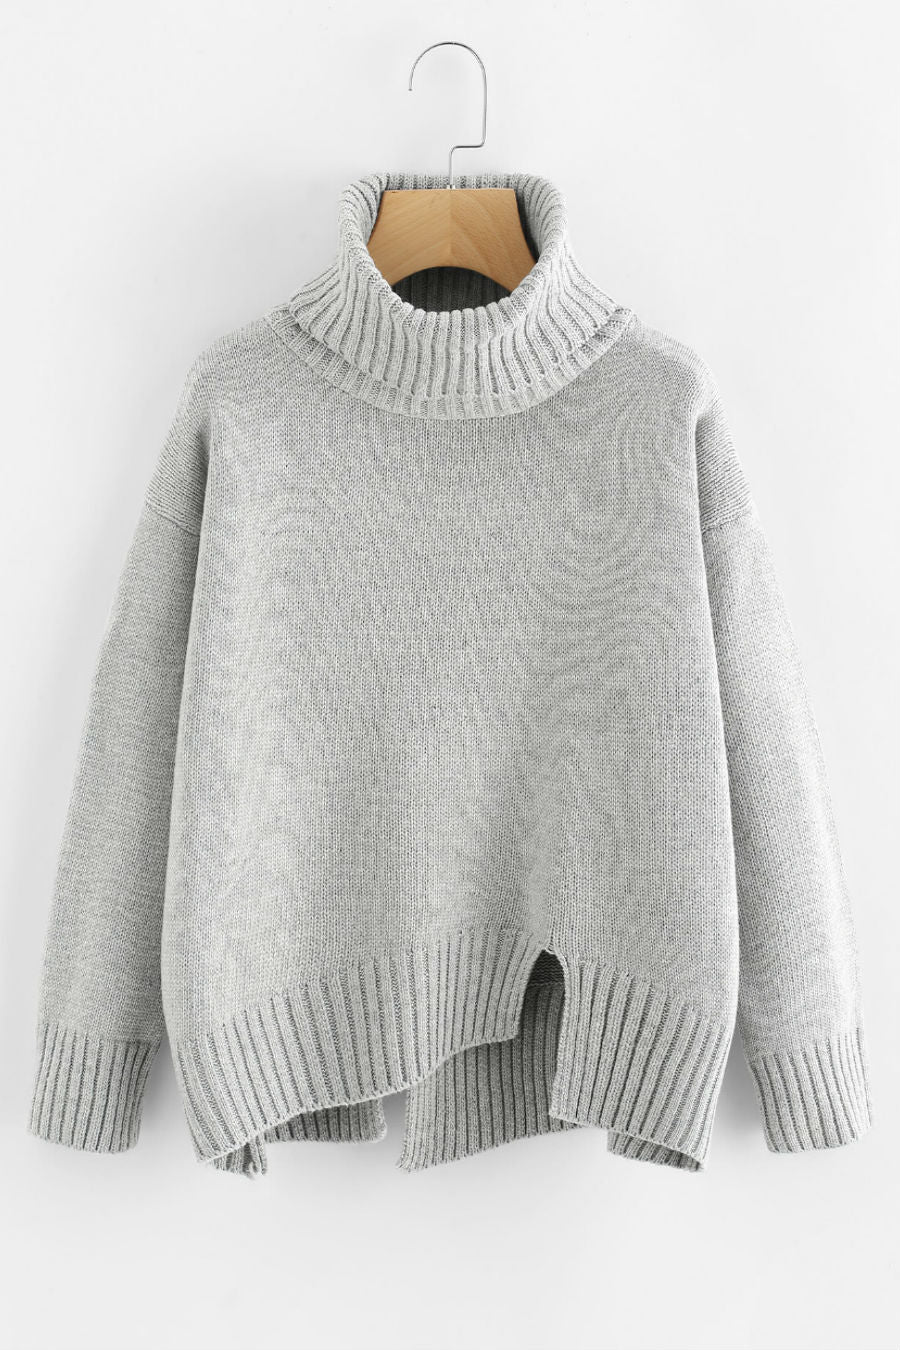 Gray Turtleneck Raw Cut Sweater